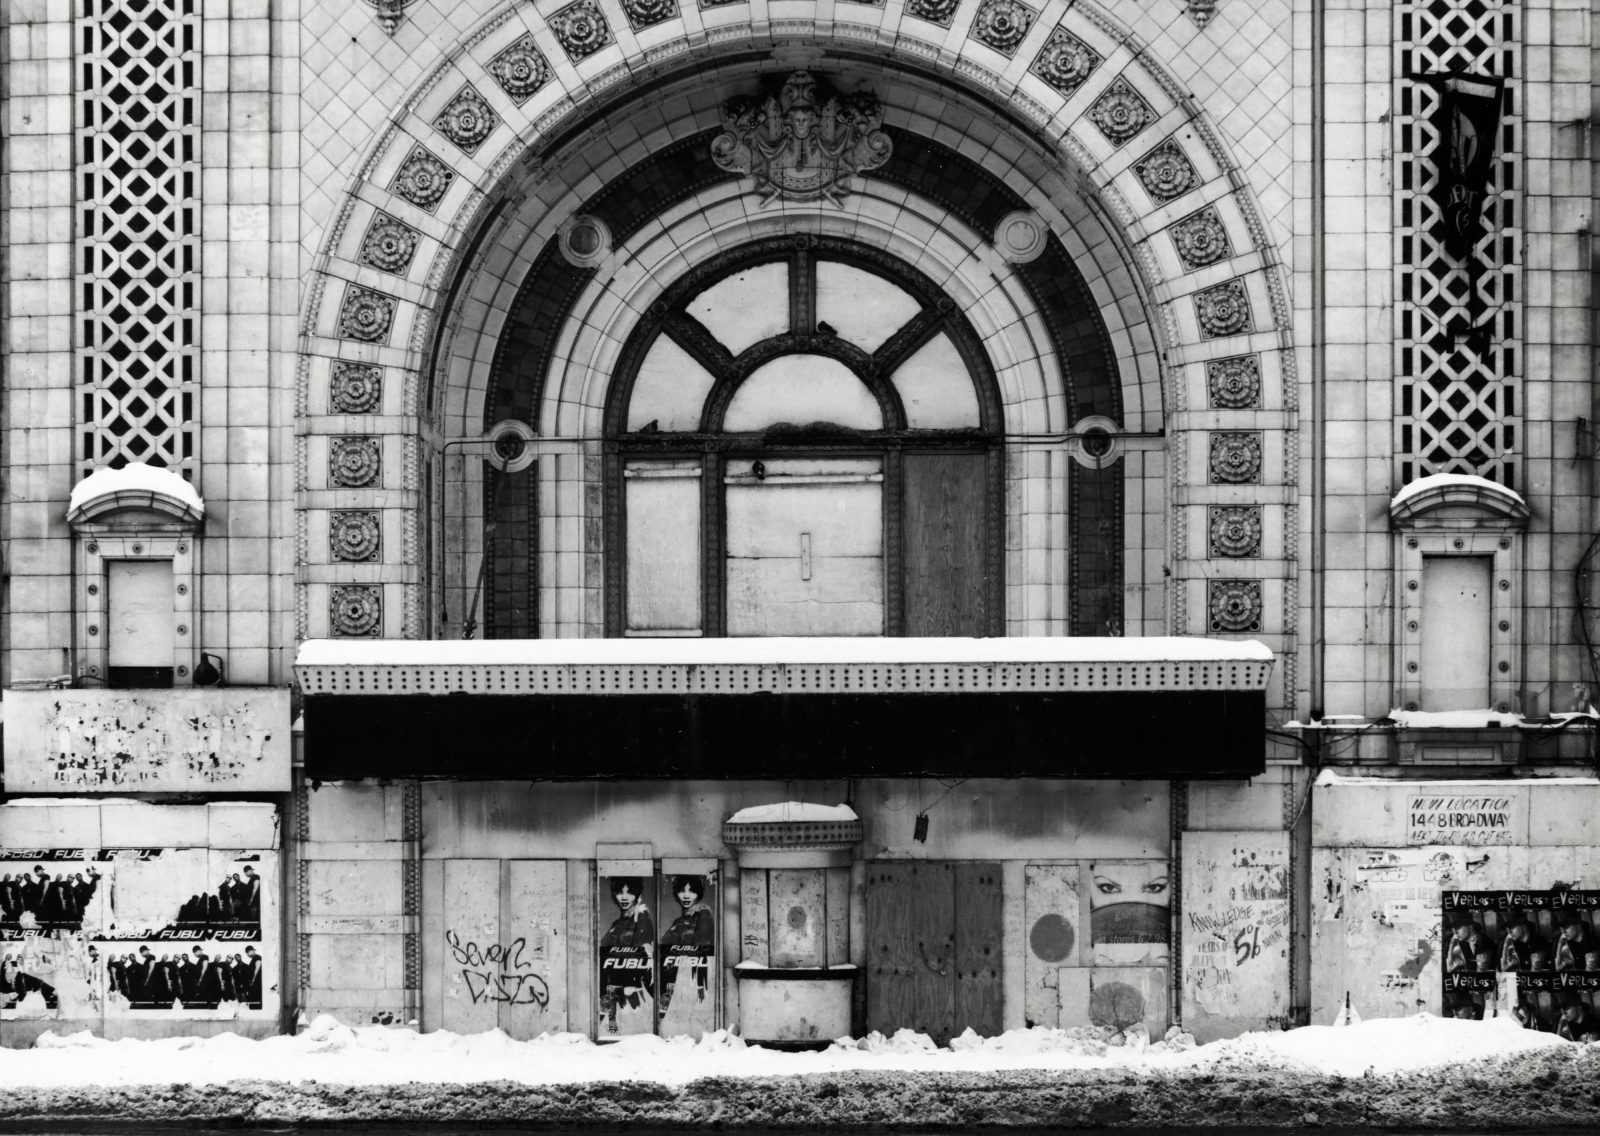 National Theater in winter. Detroit, Michigan.